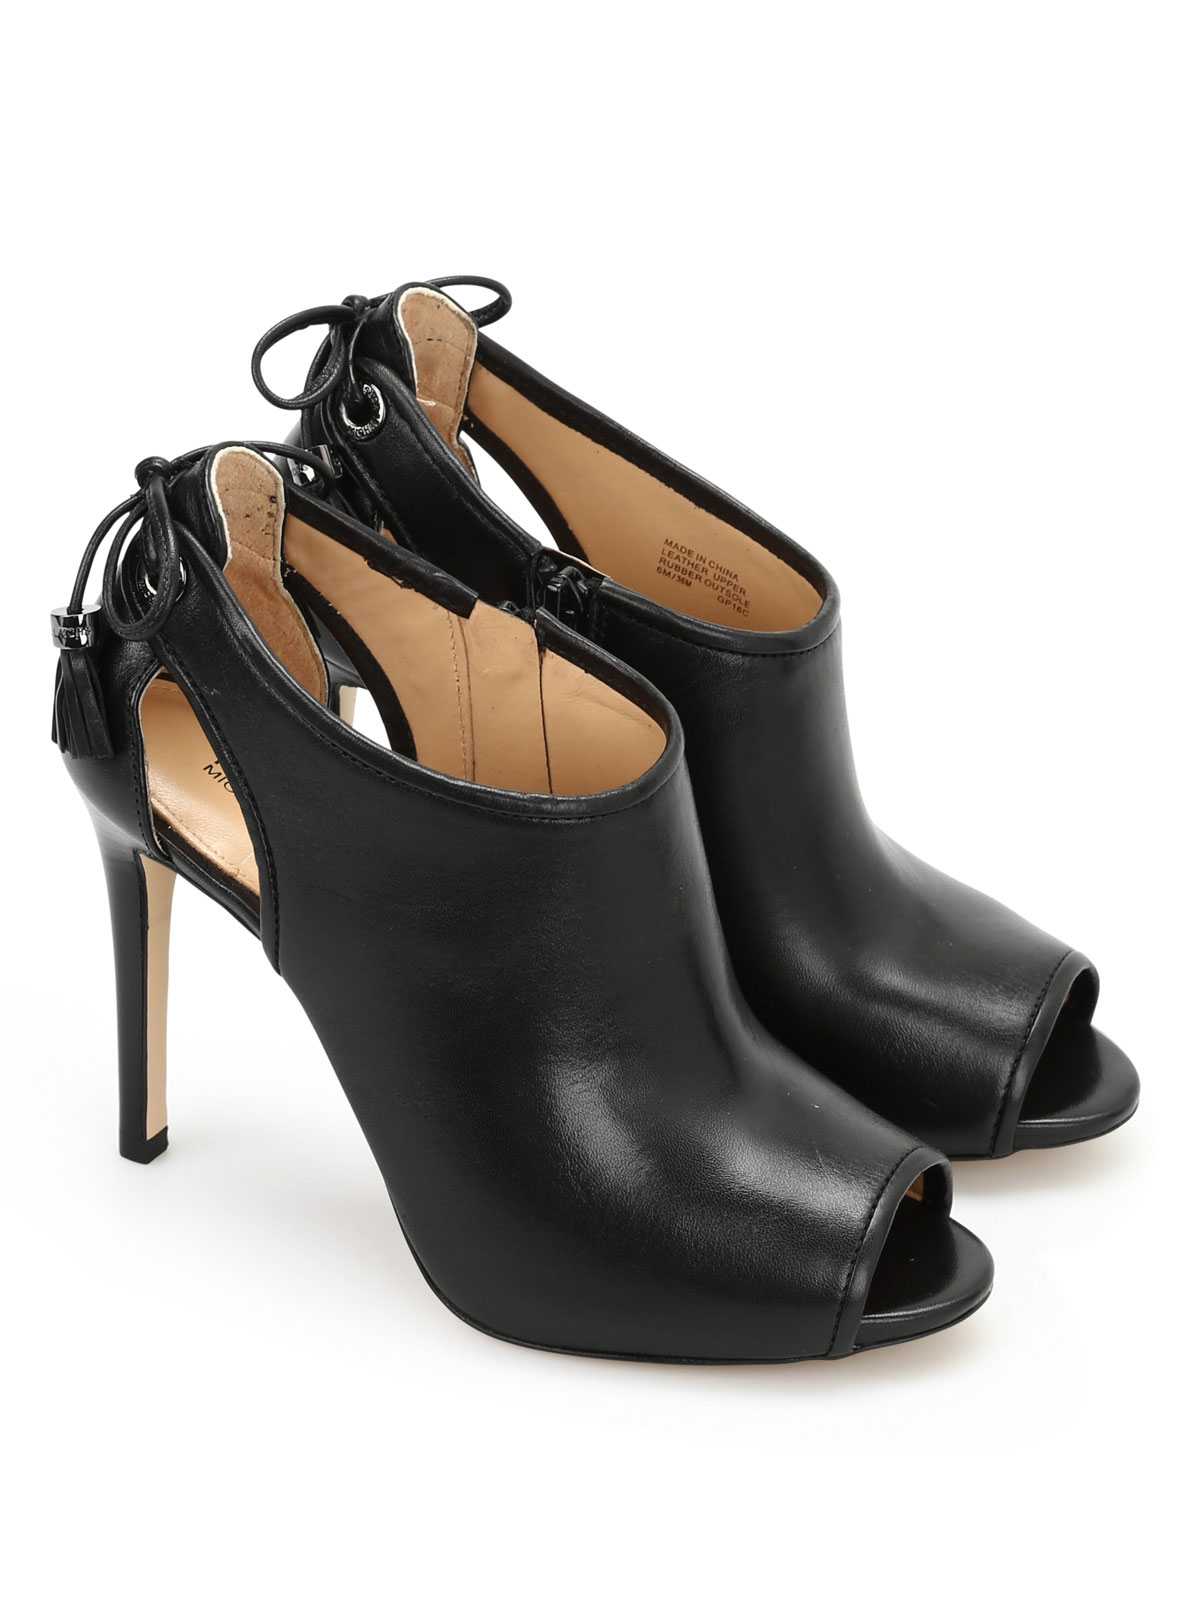 jennings booties by michael kors ankle boots ikrix. Black Bedroom Furniture Sets. Home Design Ideas